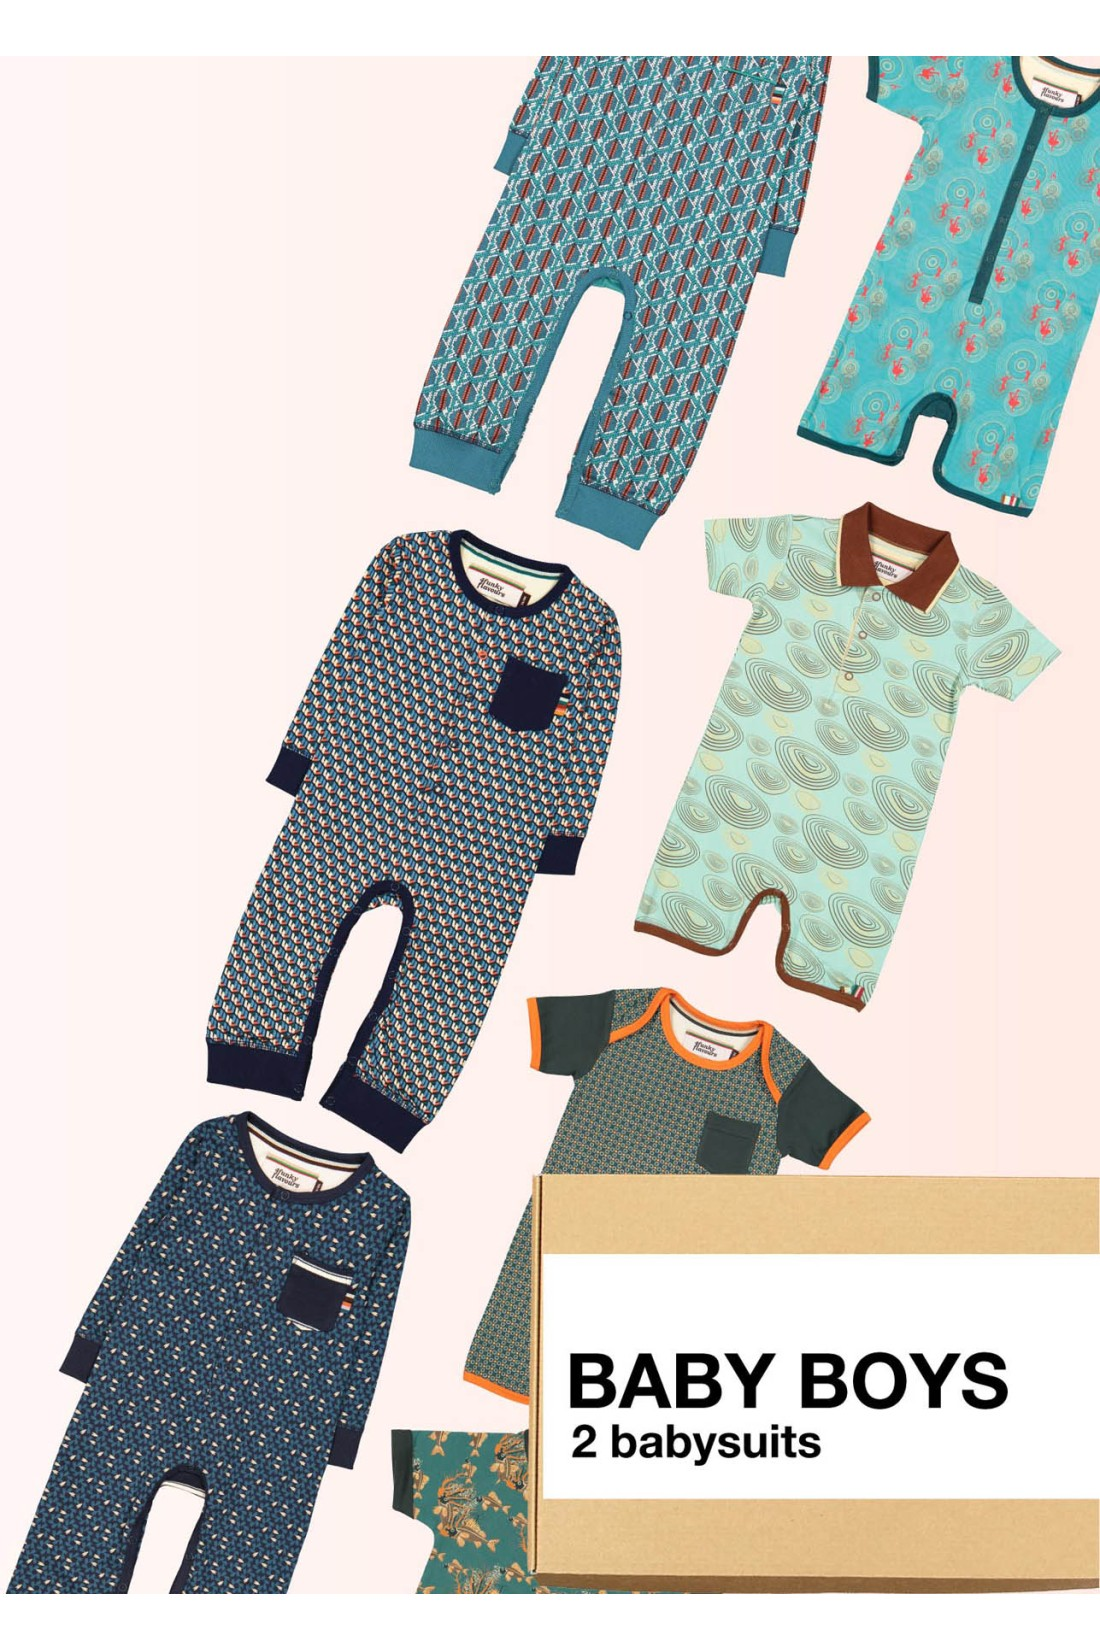 Surprise Box Baby Boys - 2x Baby Suits